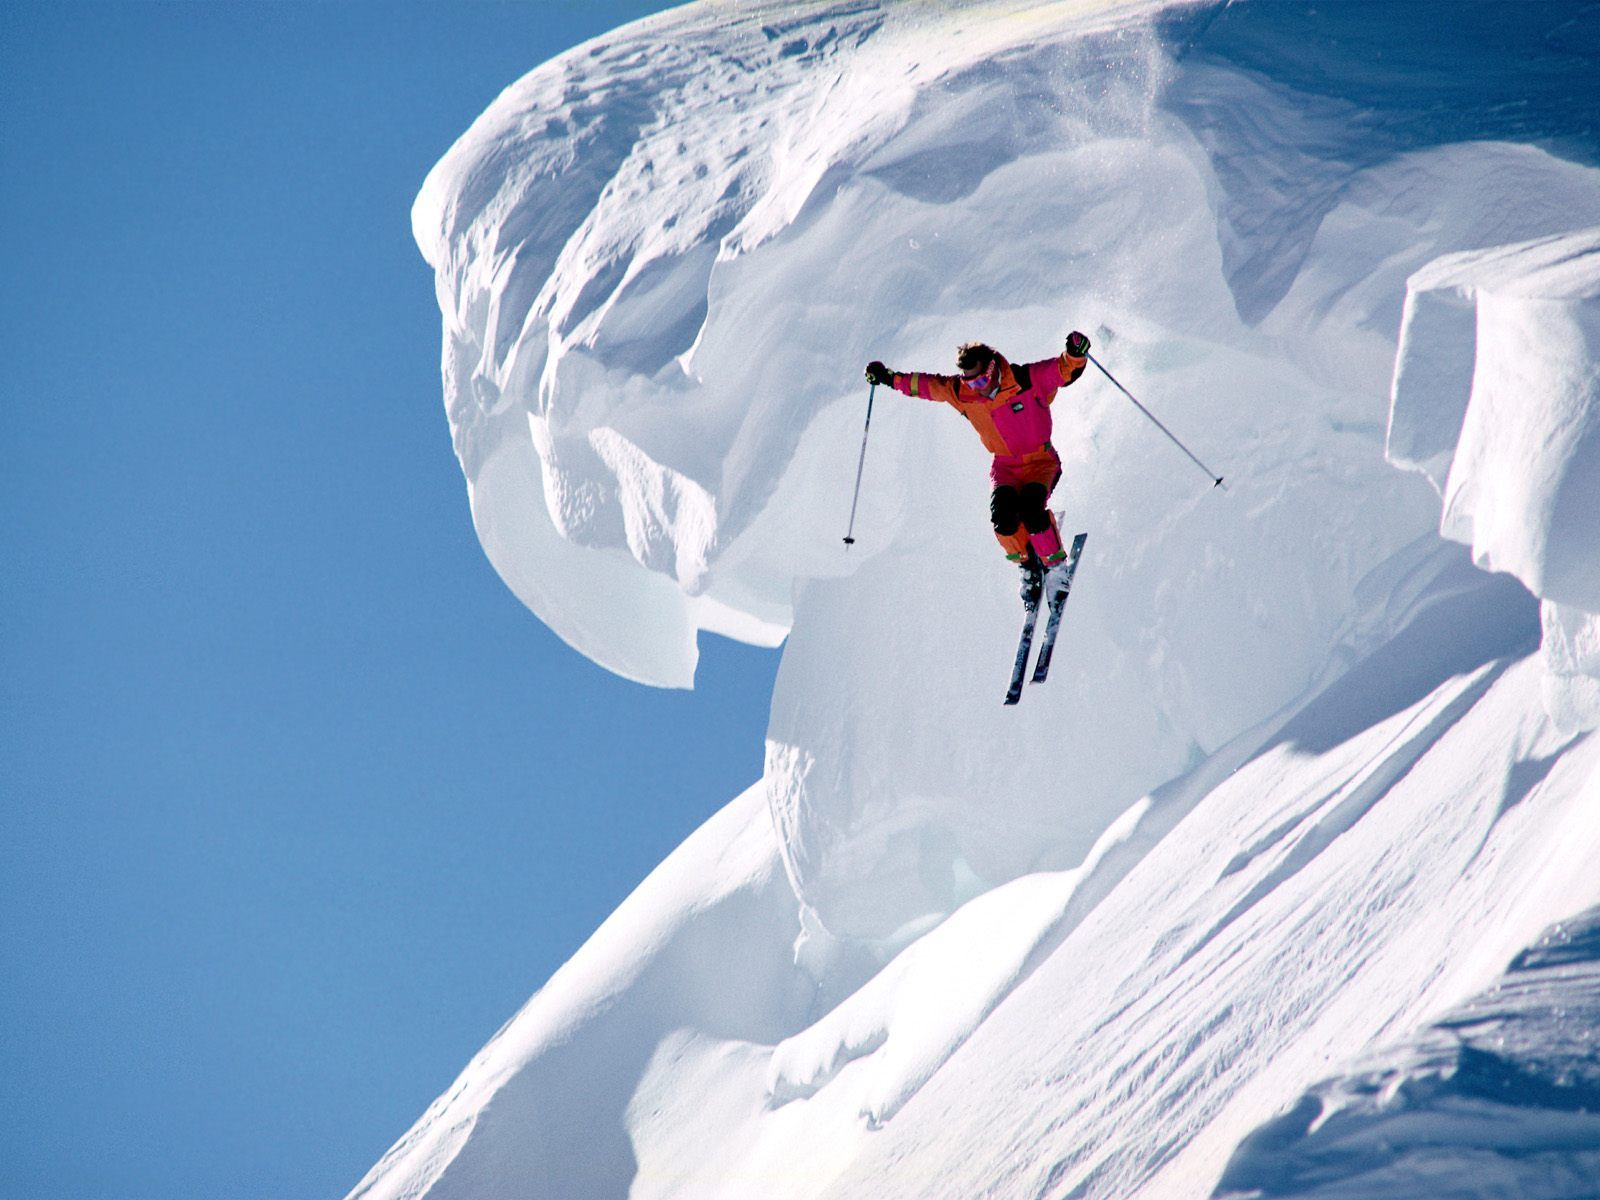 1600x1200 Skiing Wallpaper and Background Image | 1600x1200 | ID:108826 ...